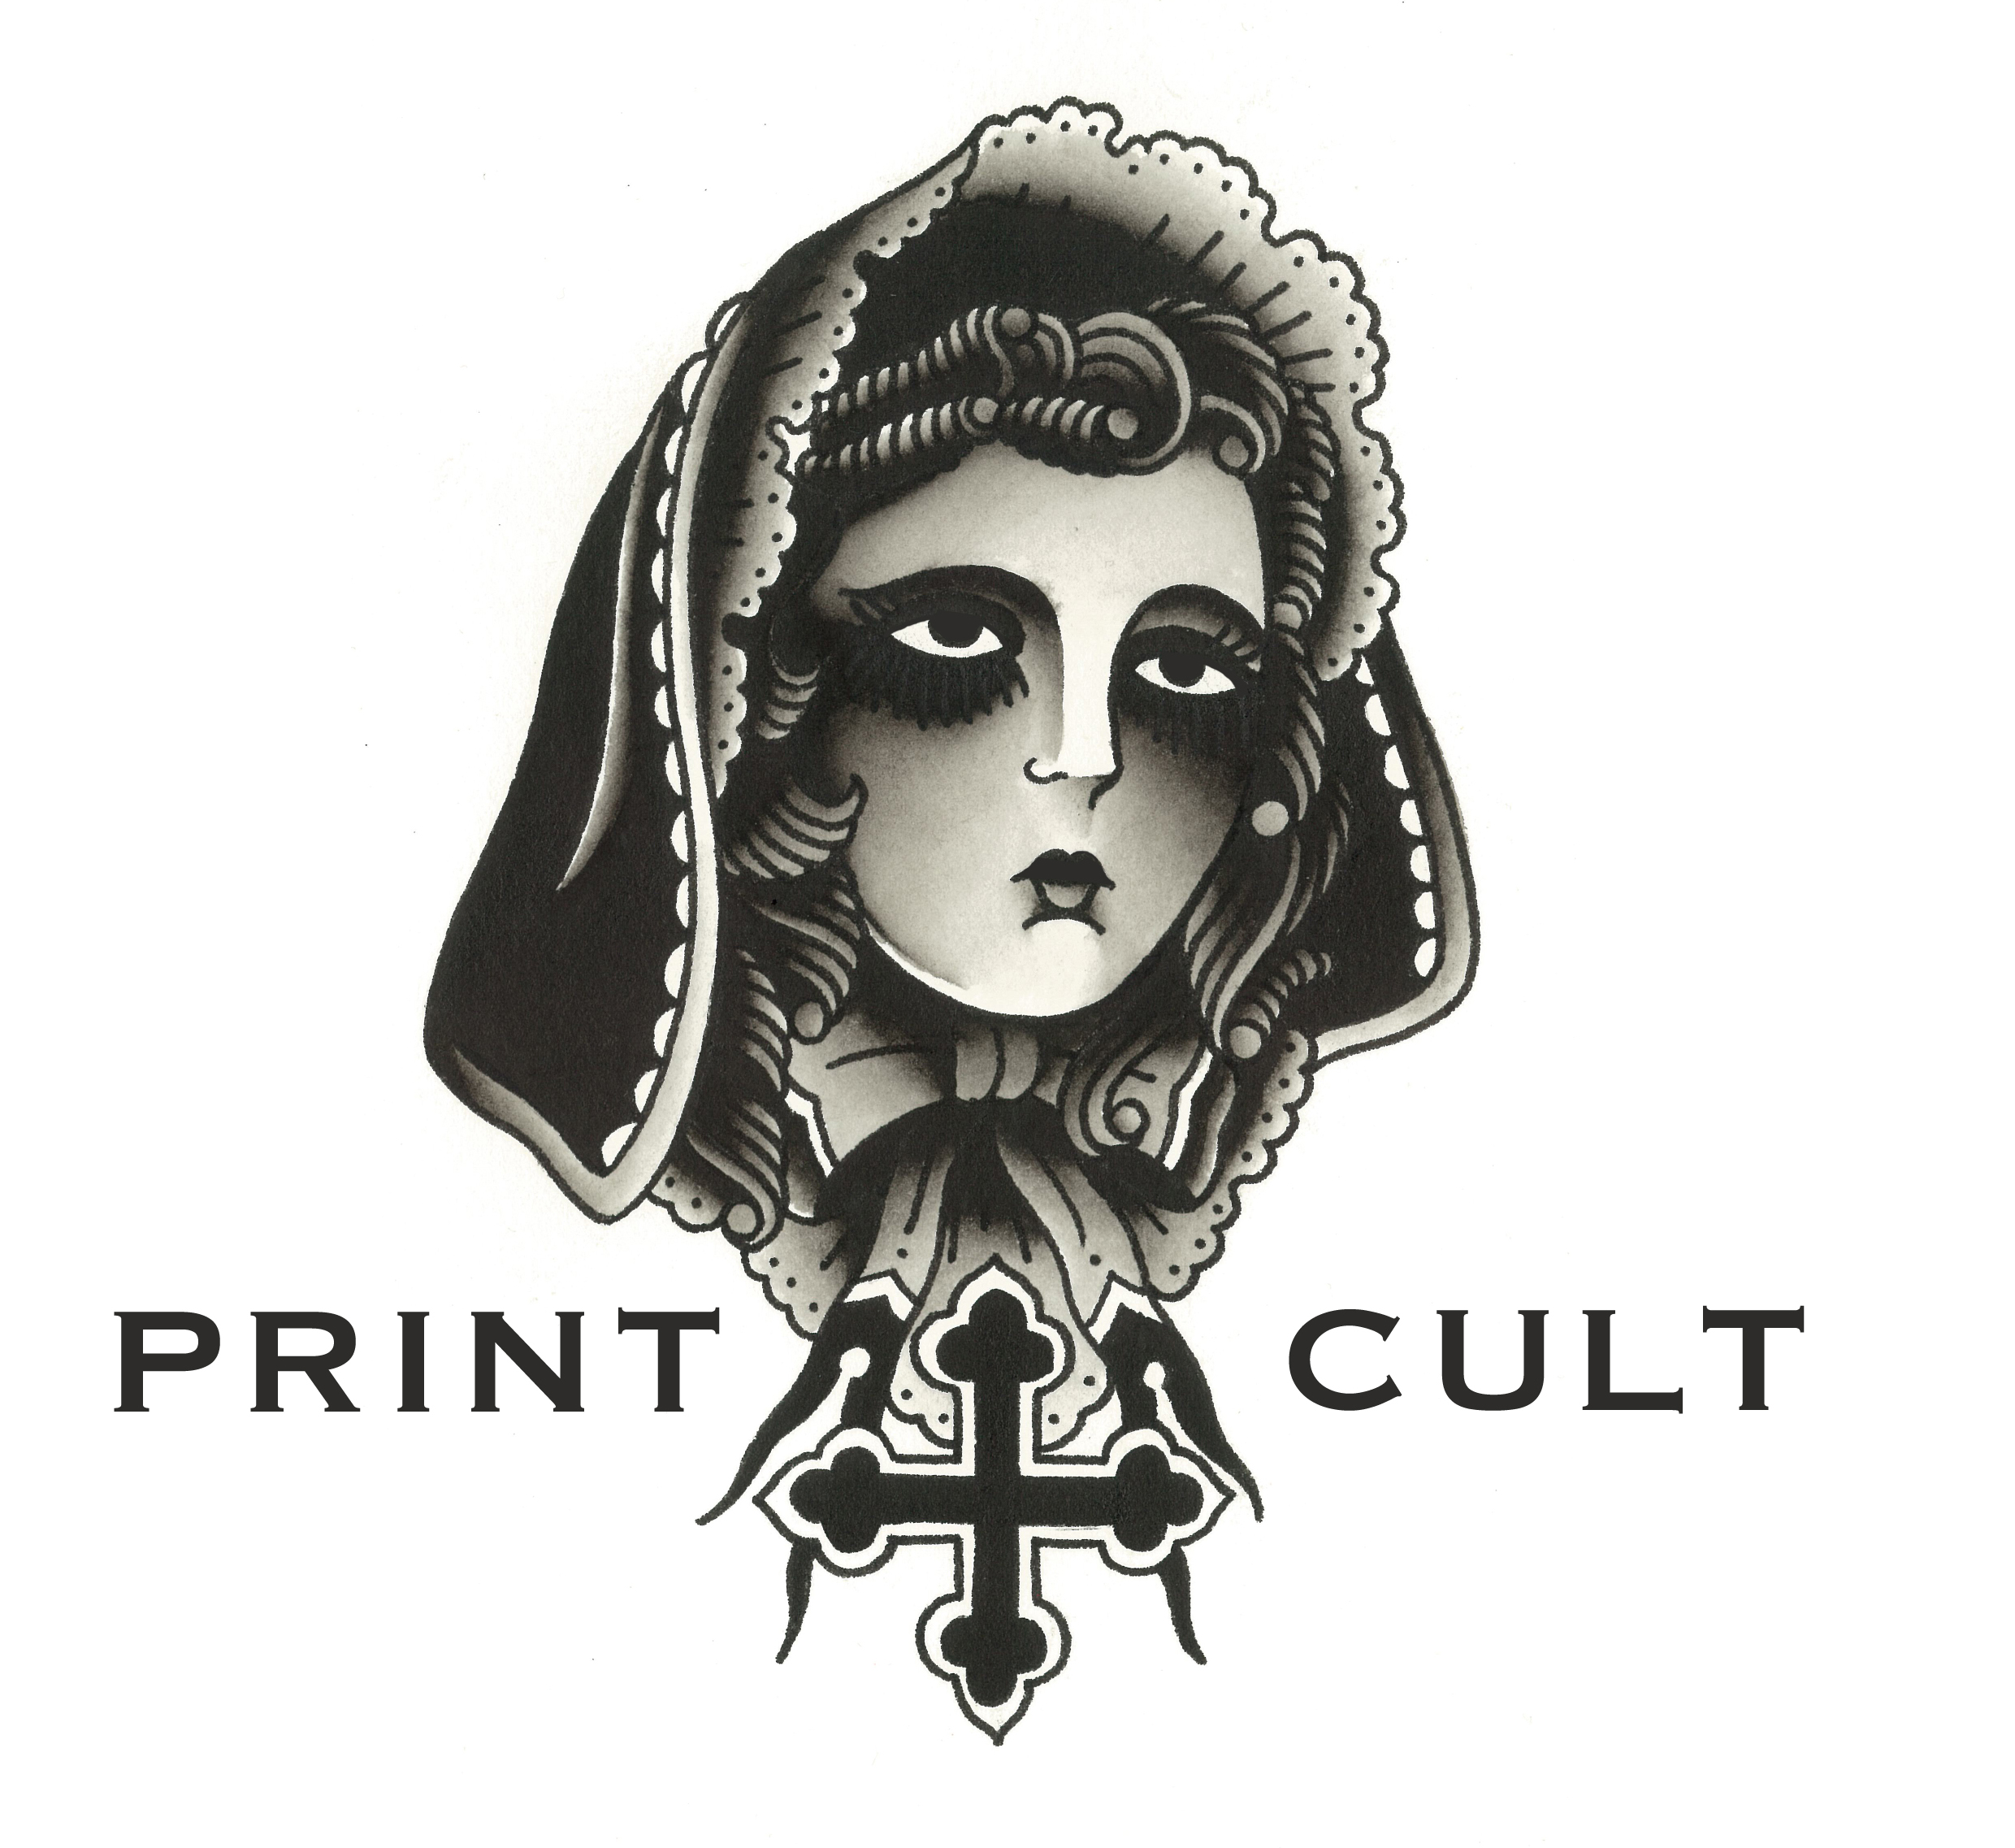 Welcome to Printcult